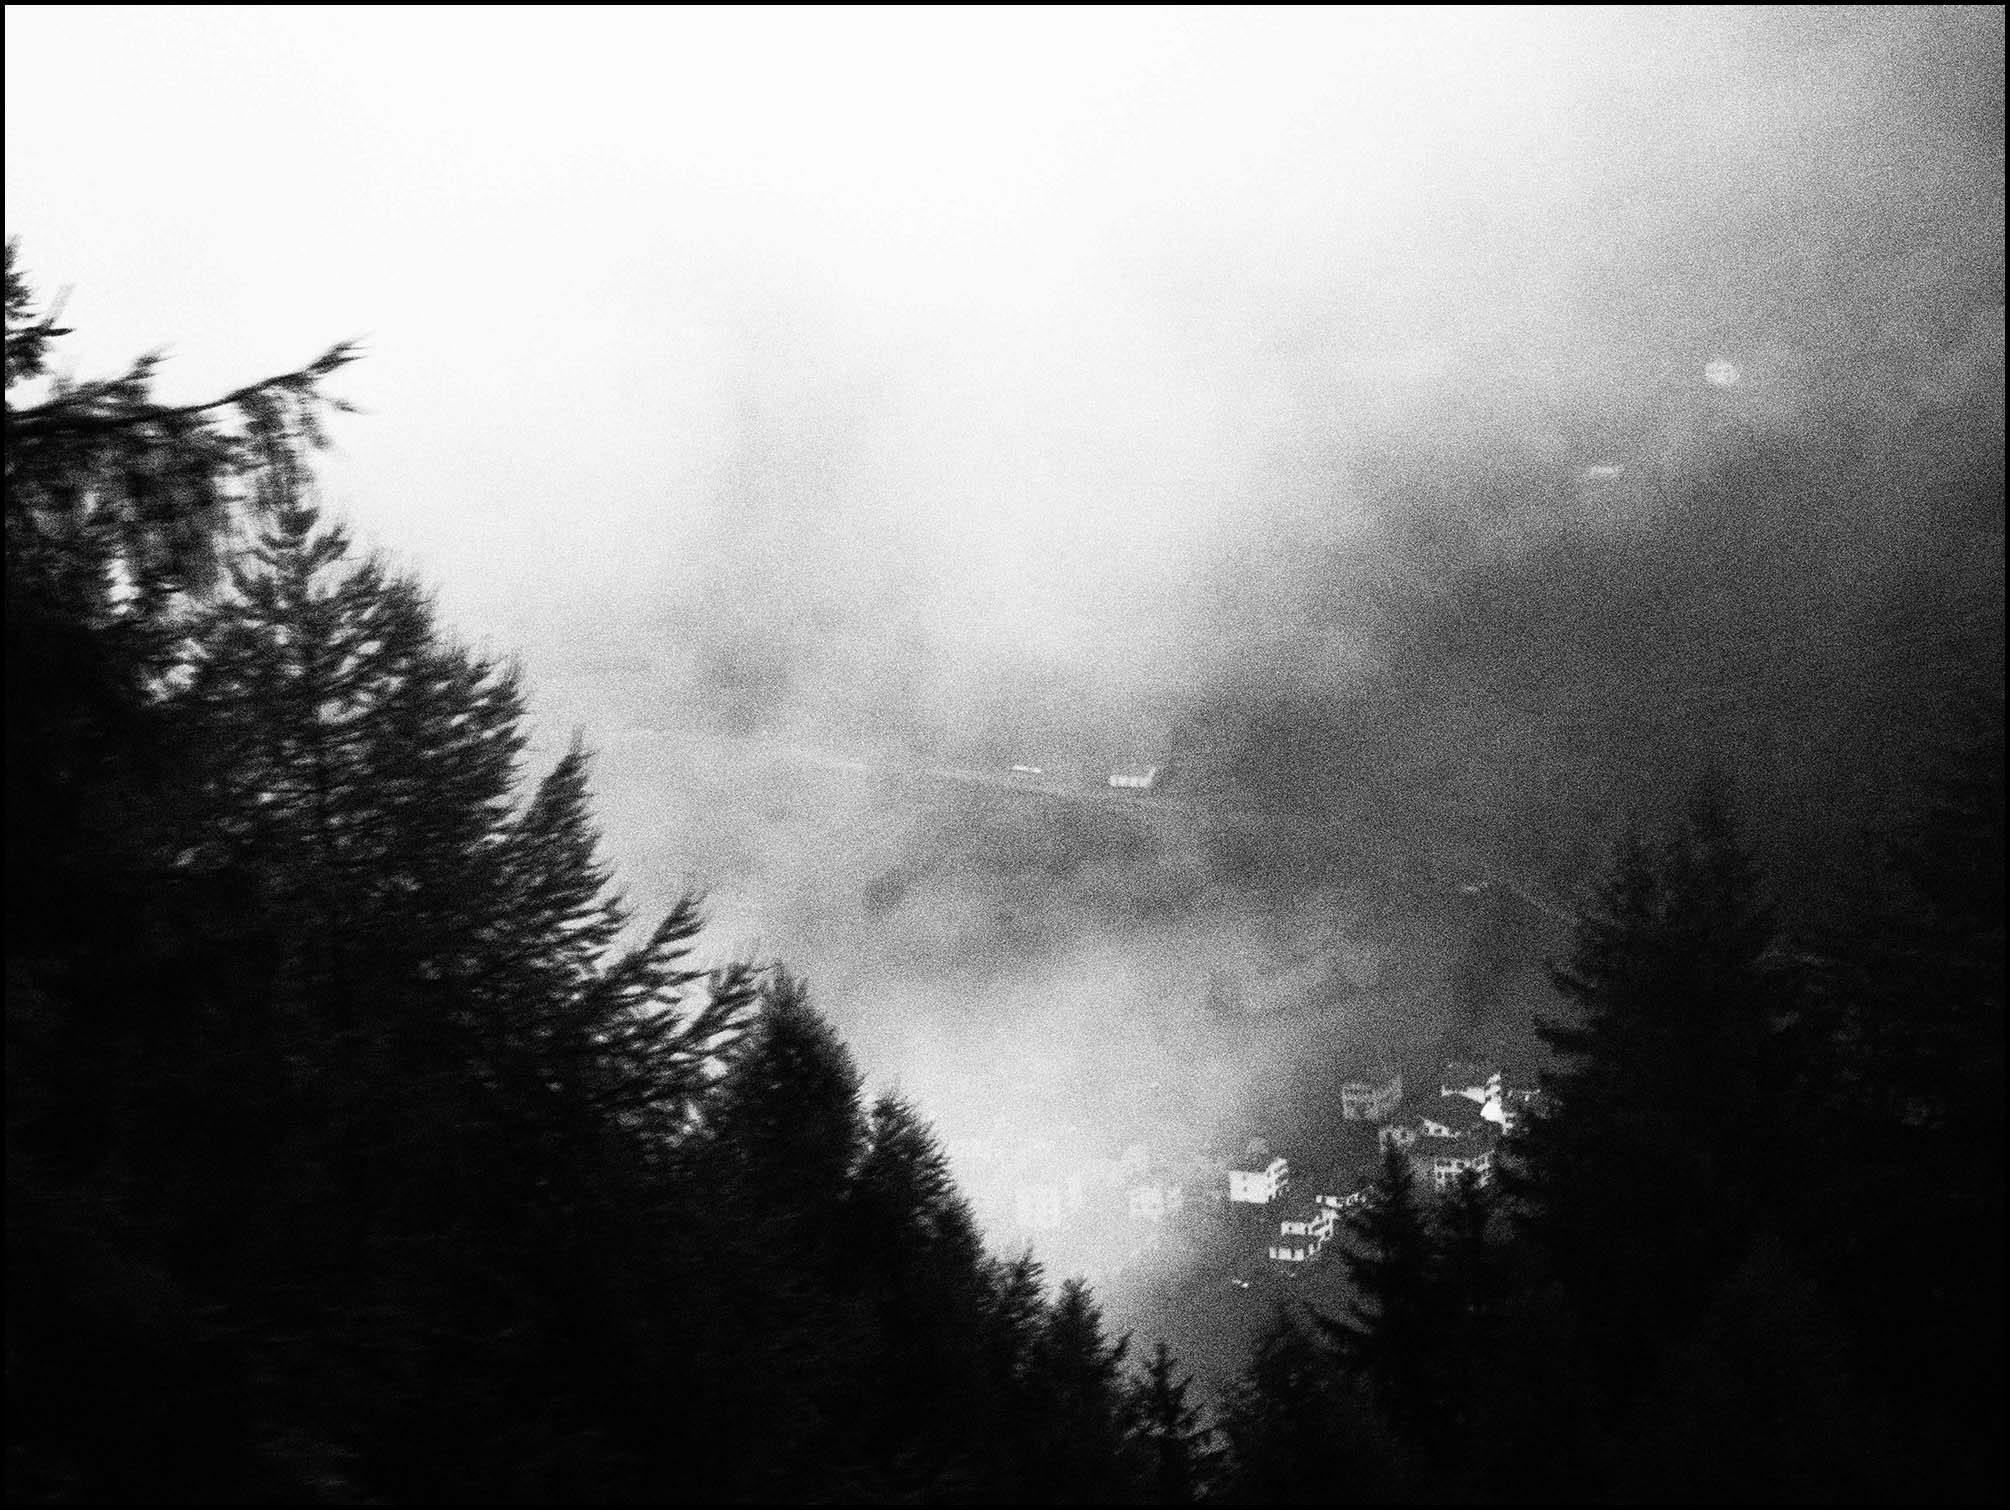 Misty, atmospheric trees, Switzerland